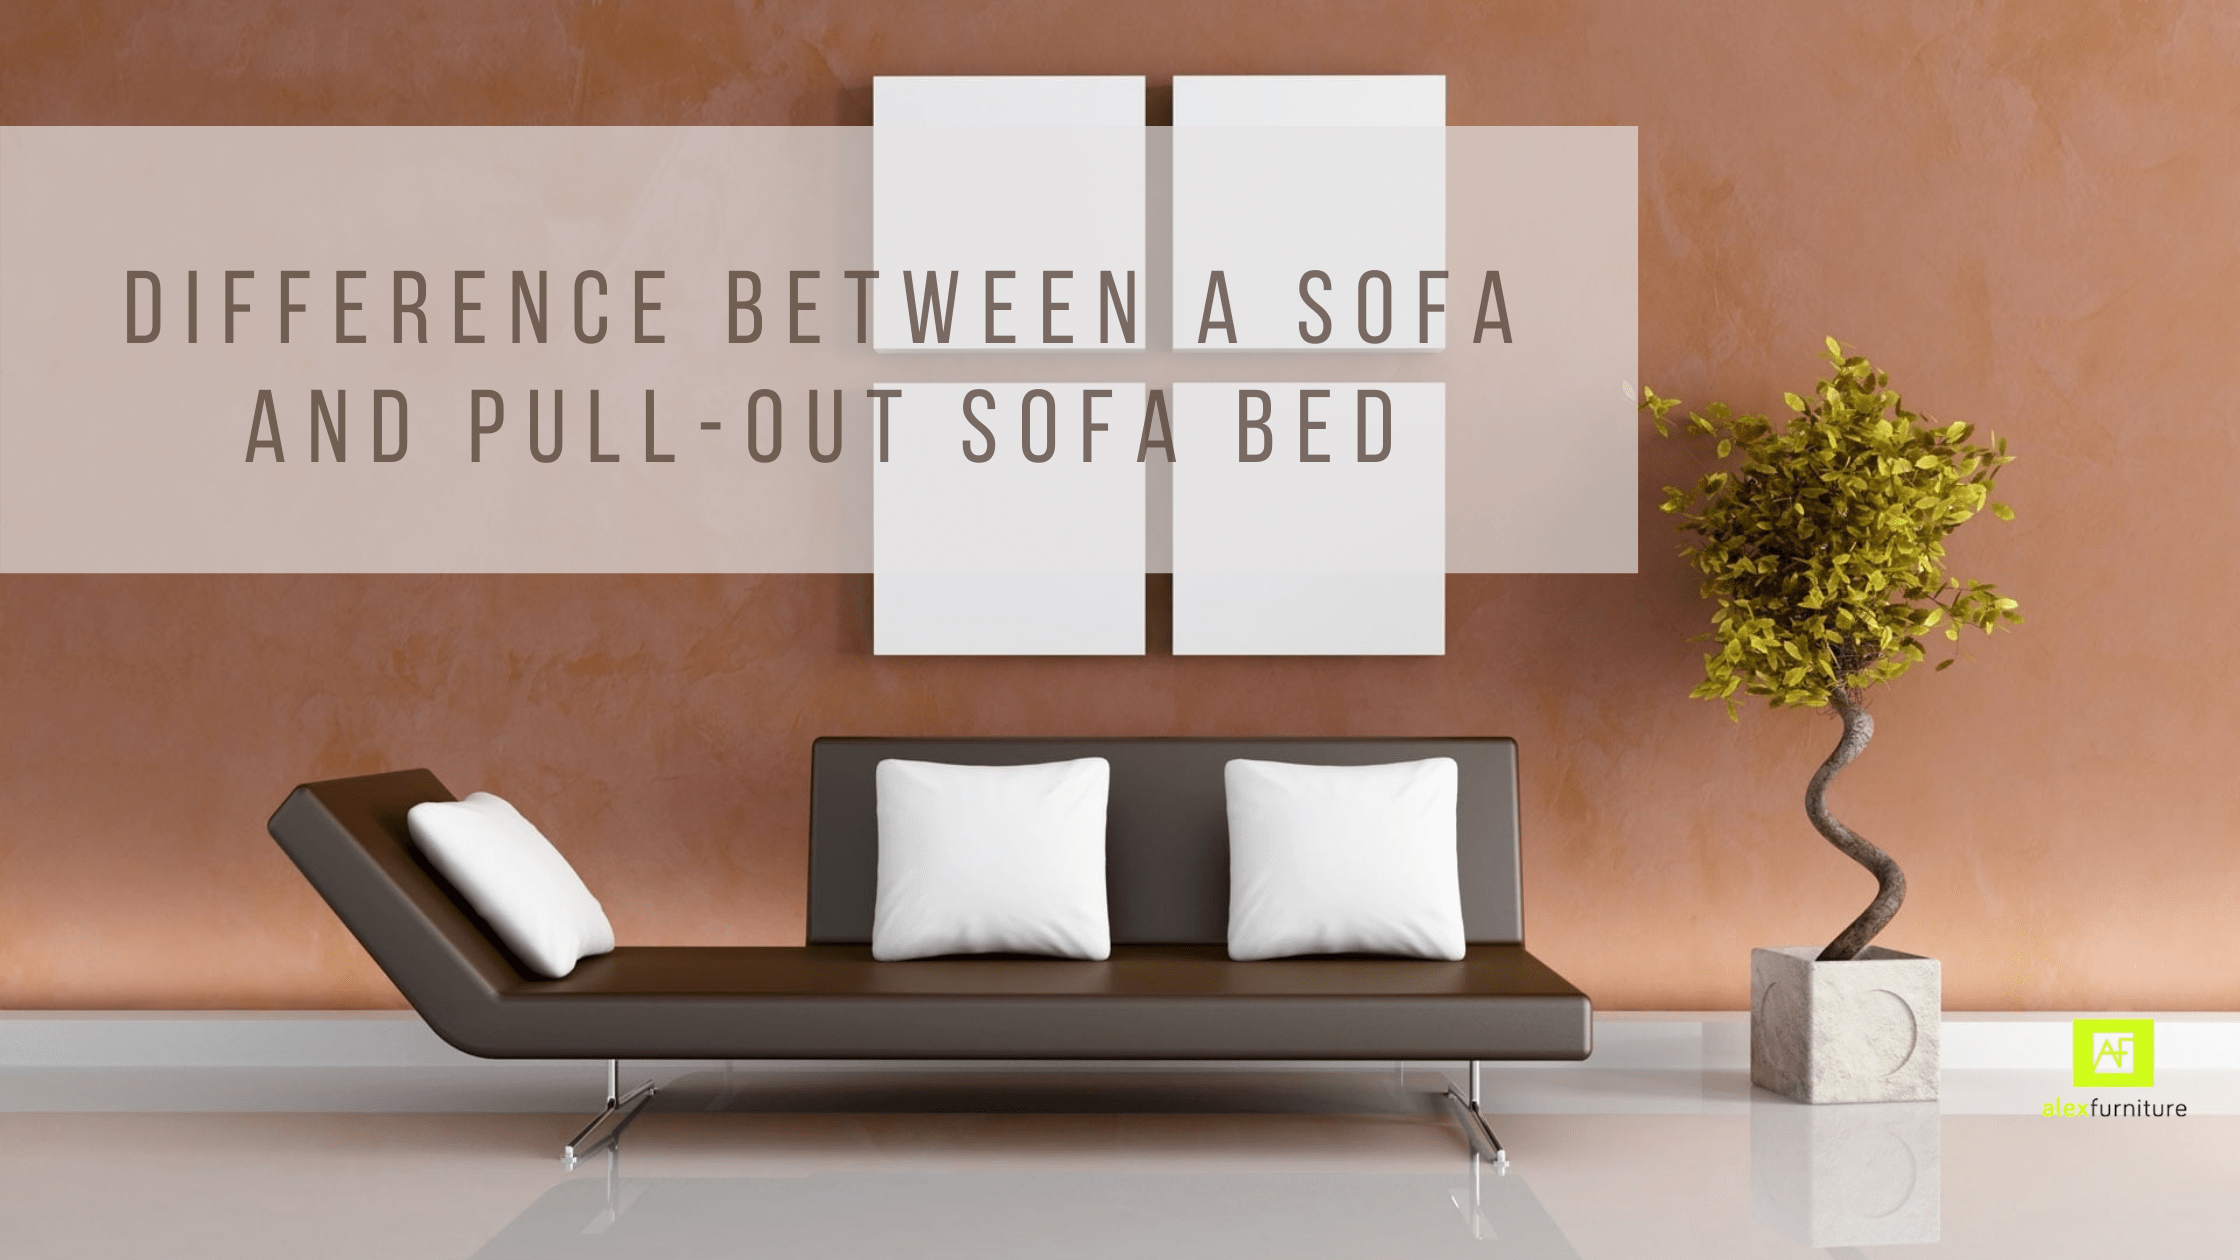 Difference Between a Sofa and Pull-Out Sofa Bed